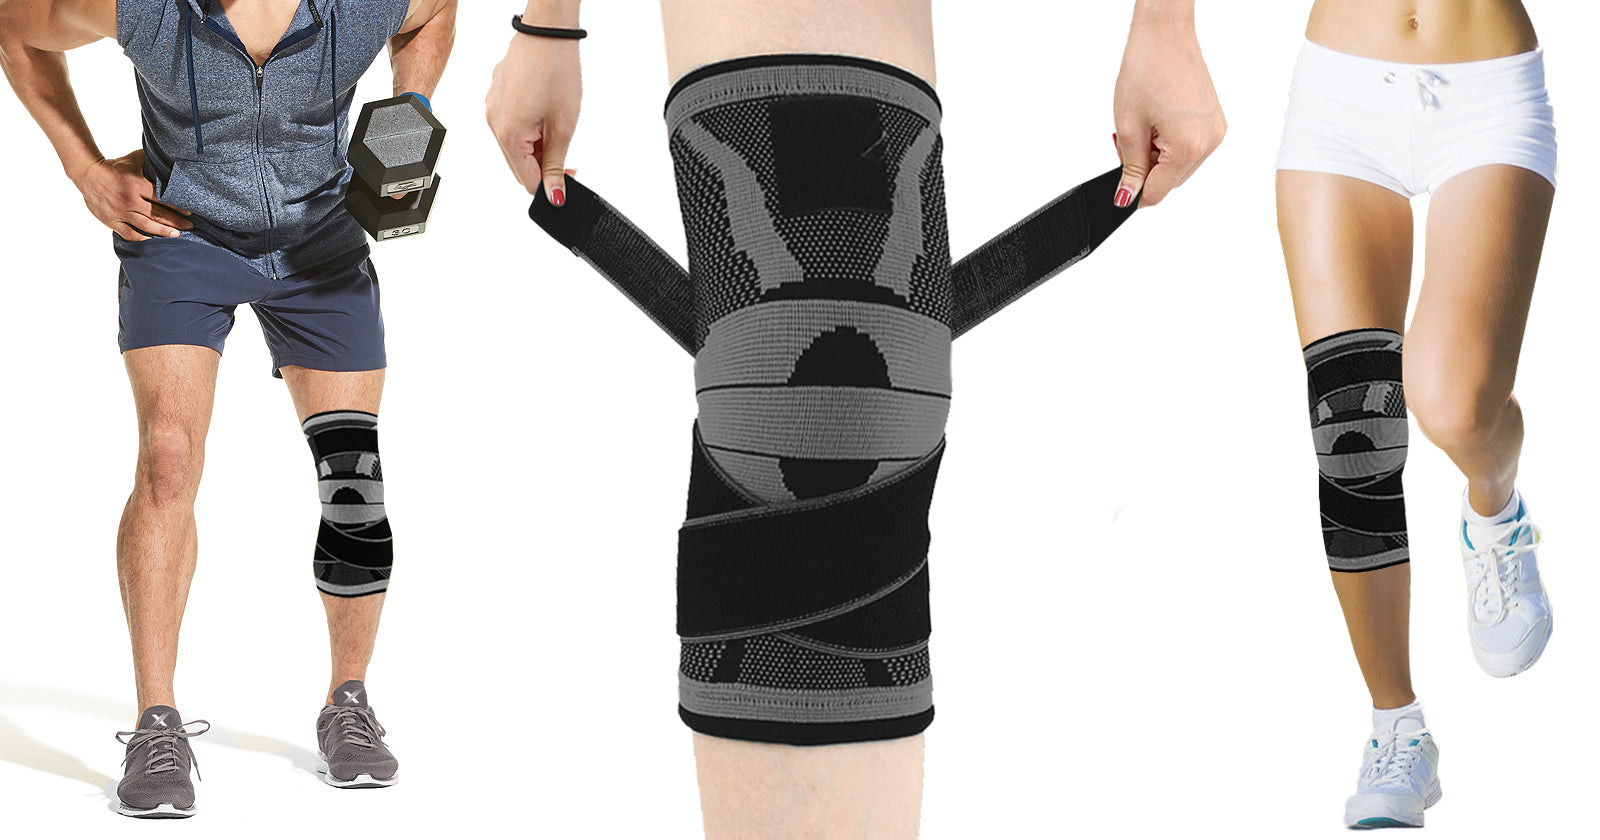 3D Knee-Compression Sleeve with Adjustable Straps